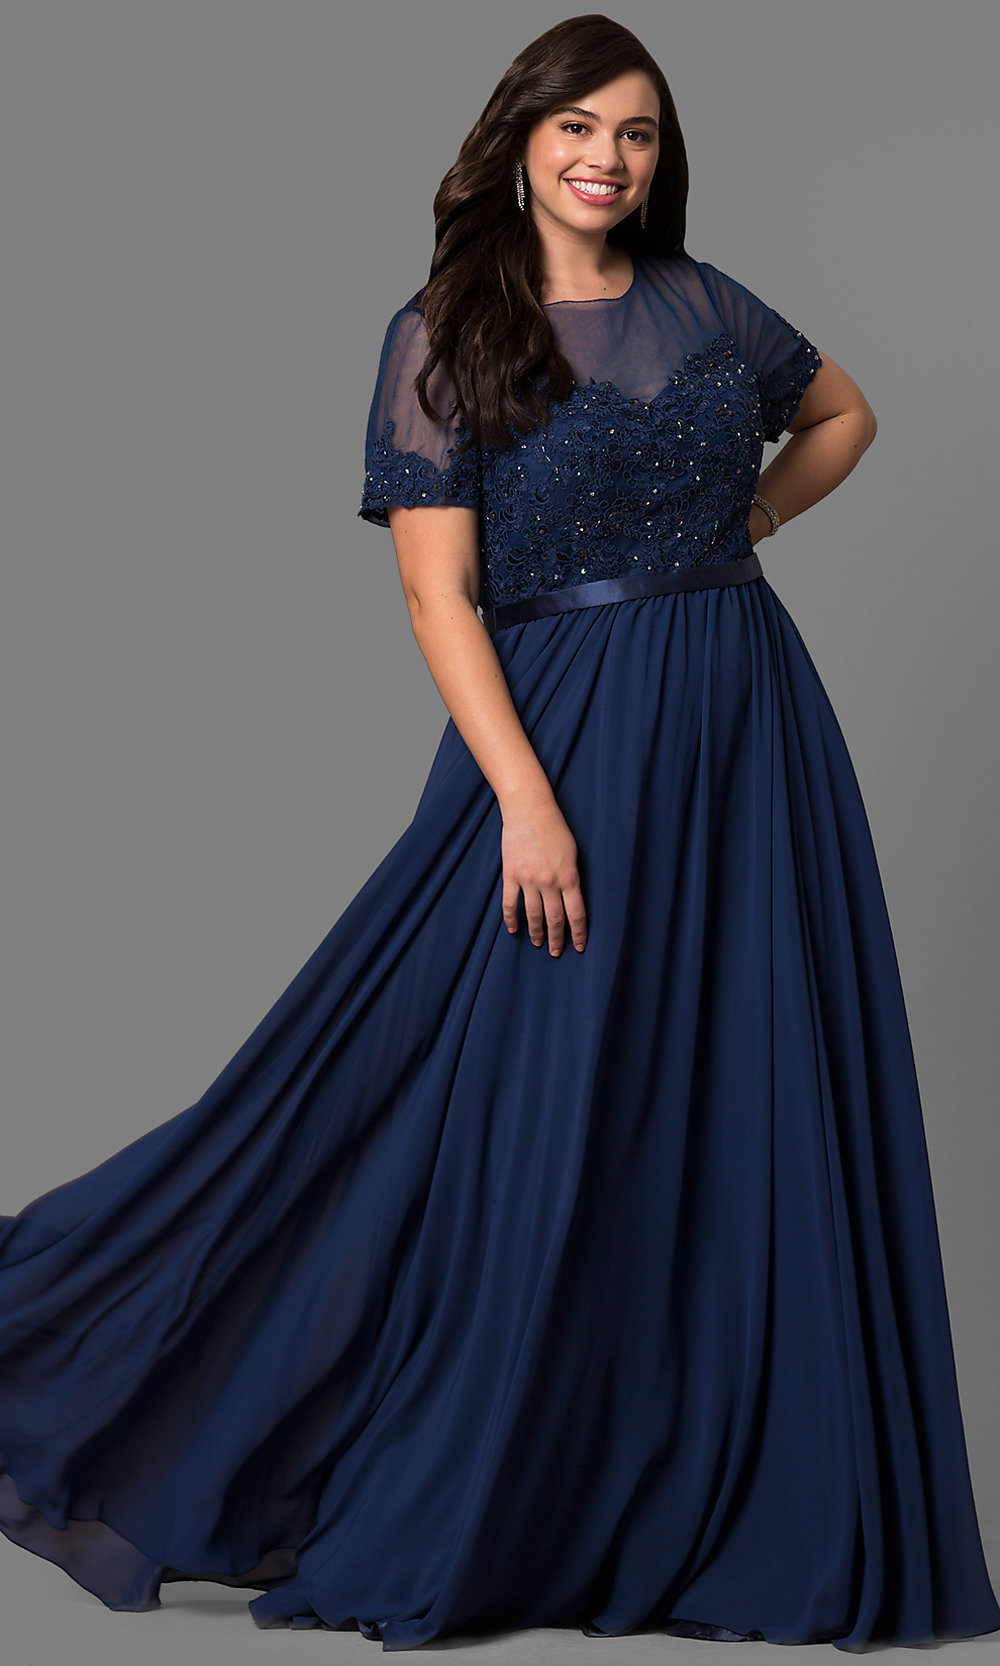 Popular plus size long sleeve prom dresses of Good Quality and at Affordable Prices You can Buy on AliExpress. We believe in helping you find the product that is right for you.